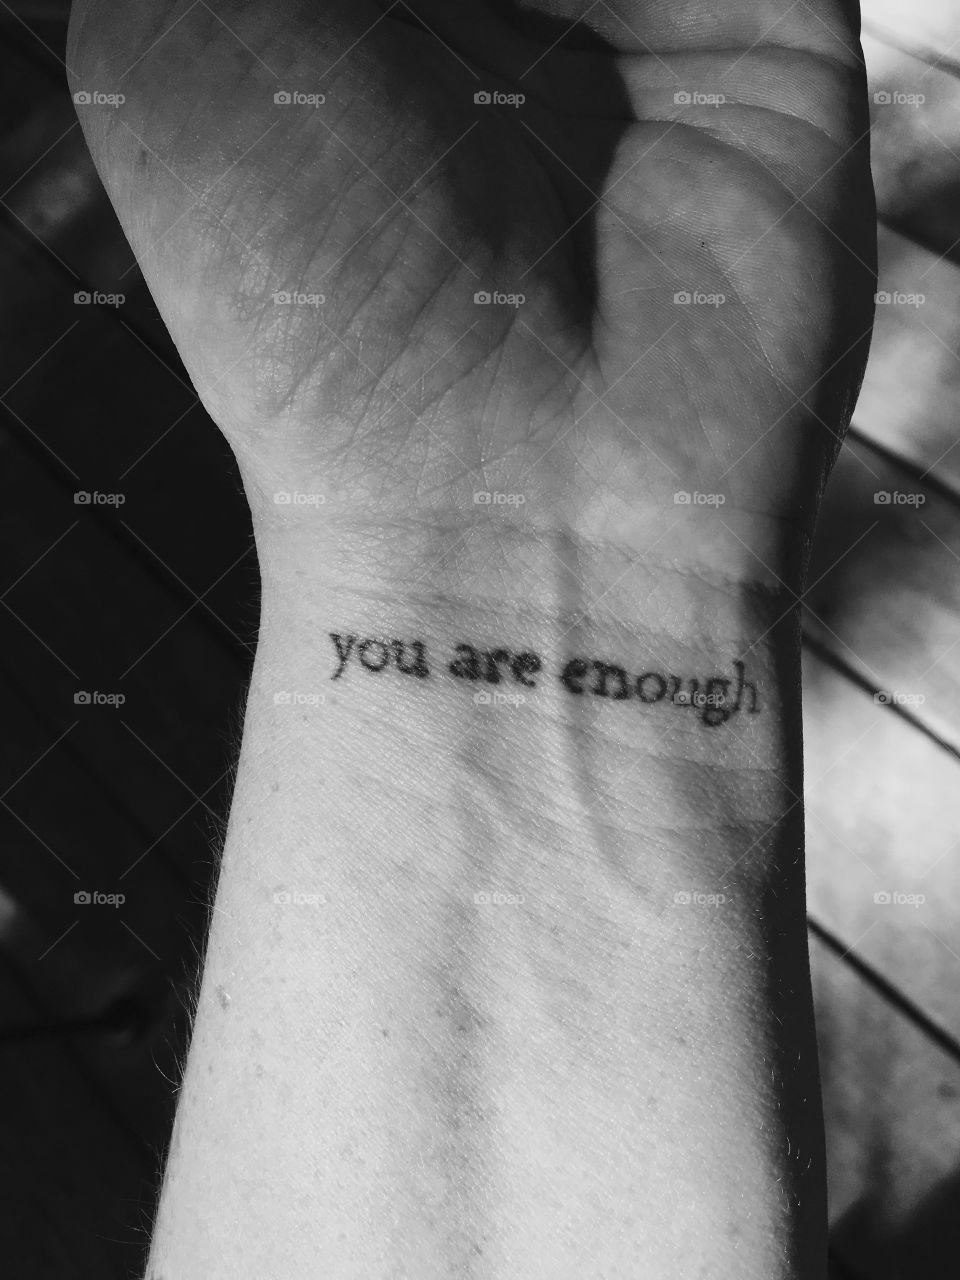 A permanent reminder that it's okay to be who you are without trying to be more than that.